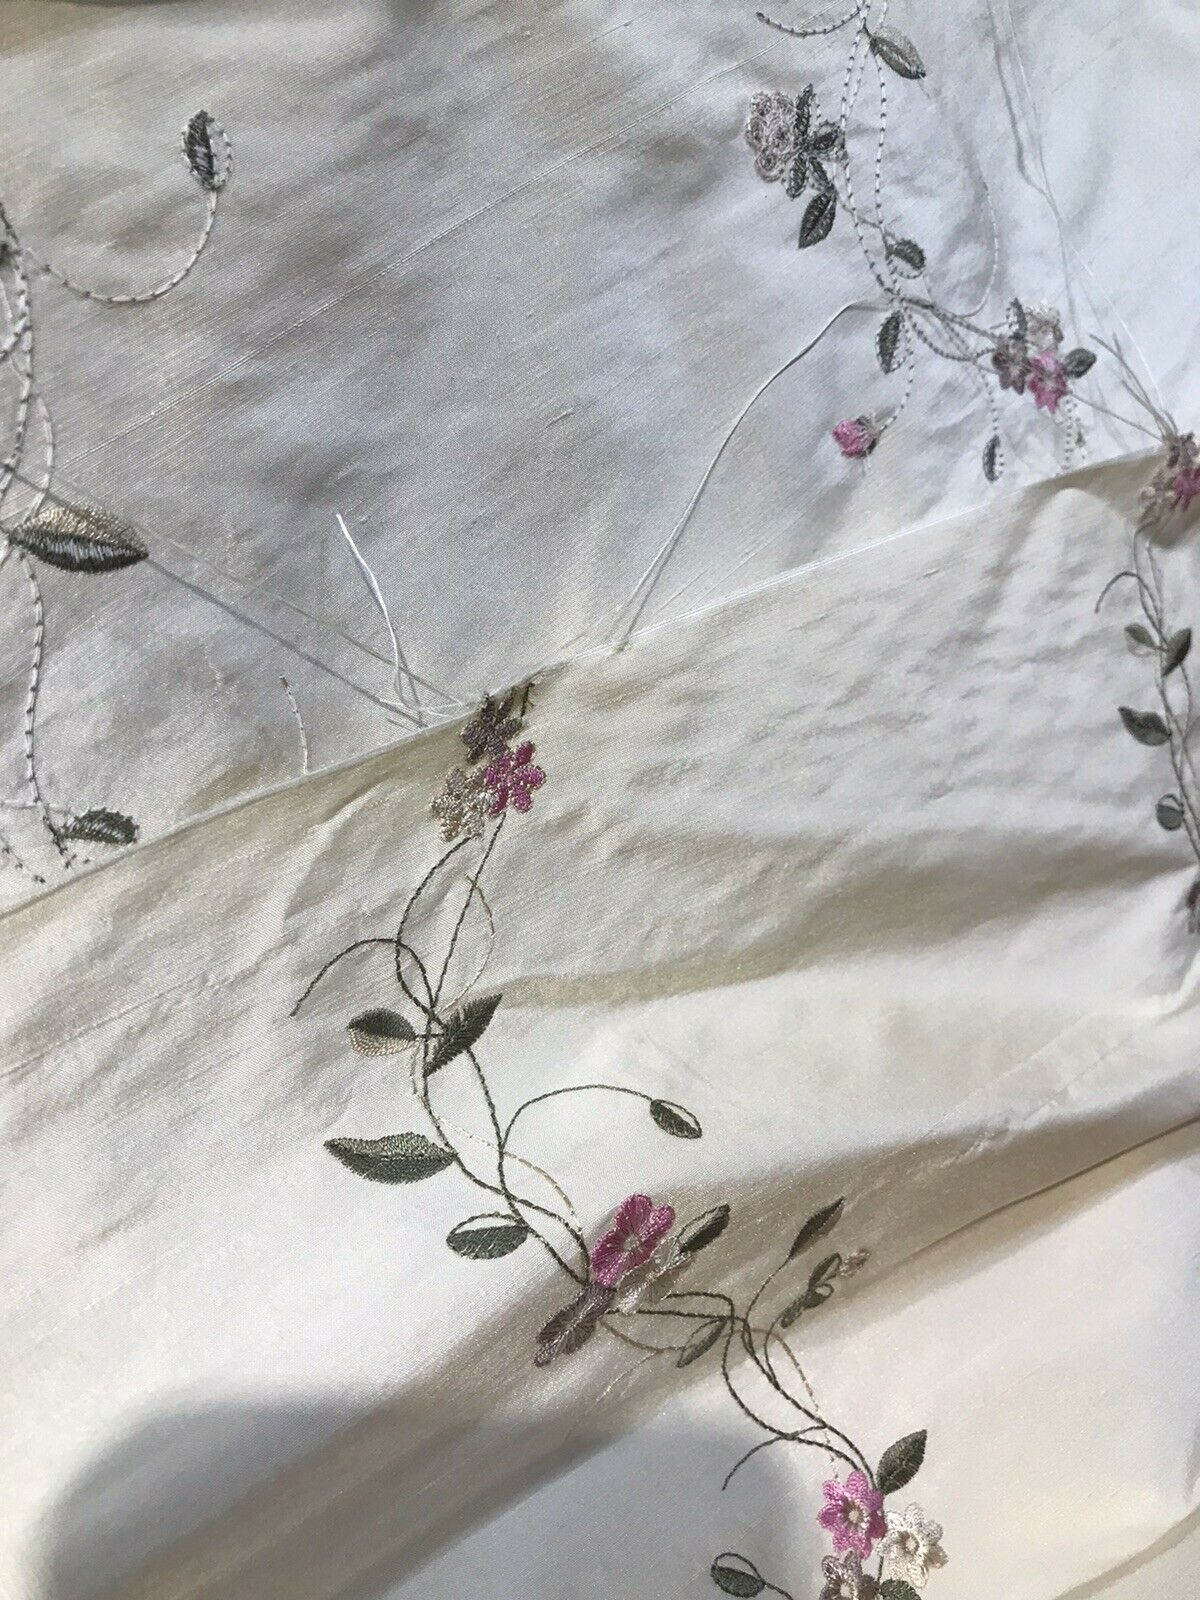 NEW! 100% Silk Dupioni Embroidery Floral Fabric- Light Beige & Pink